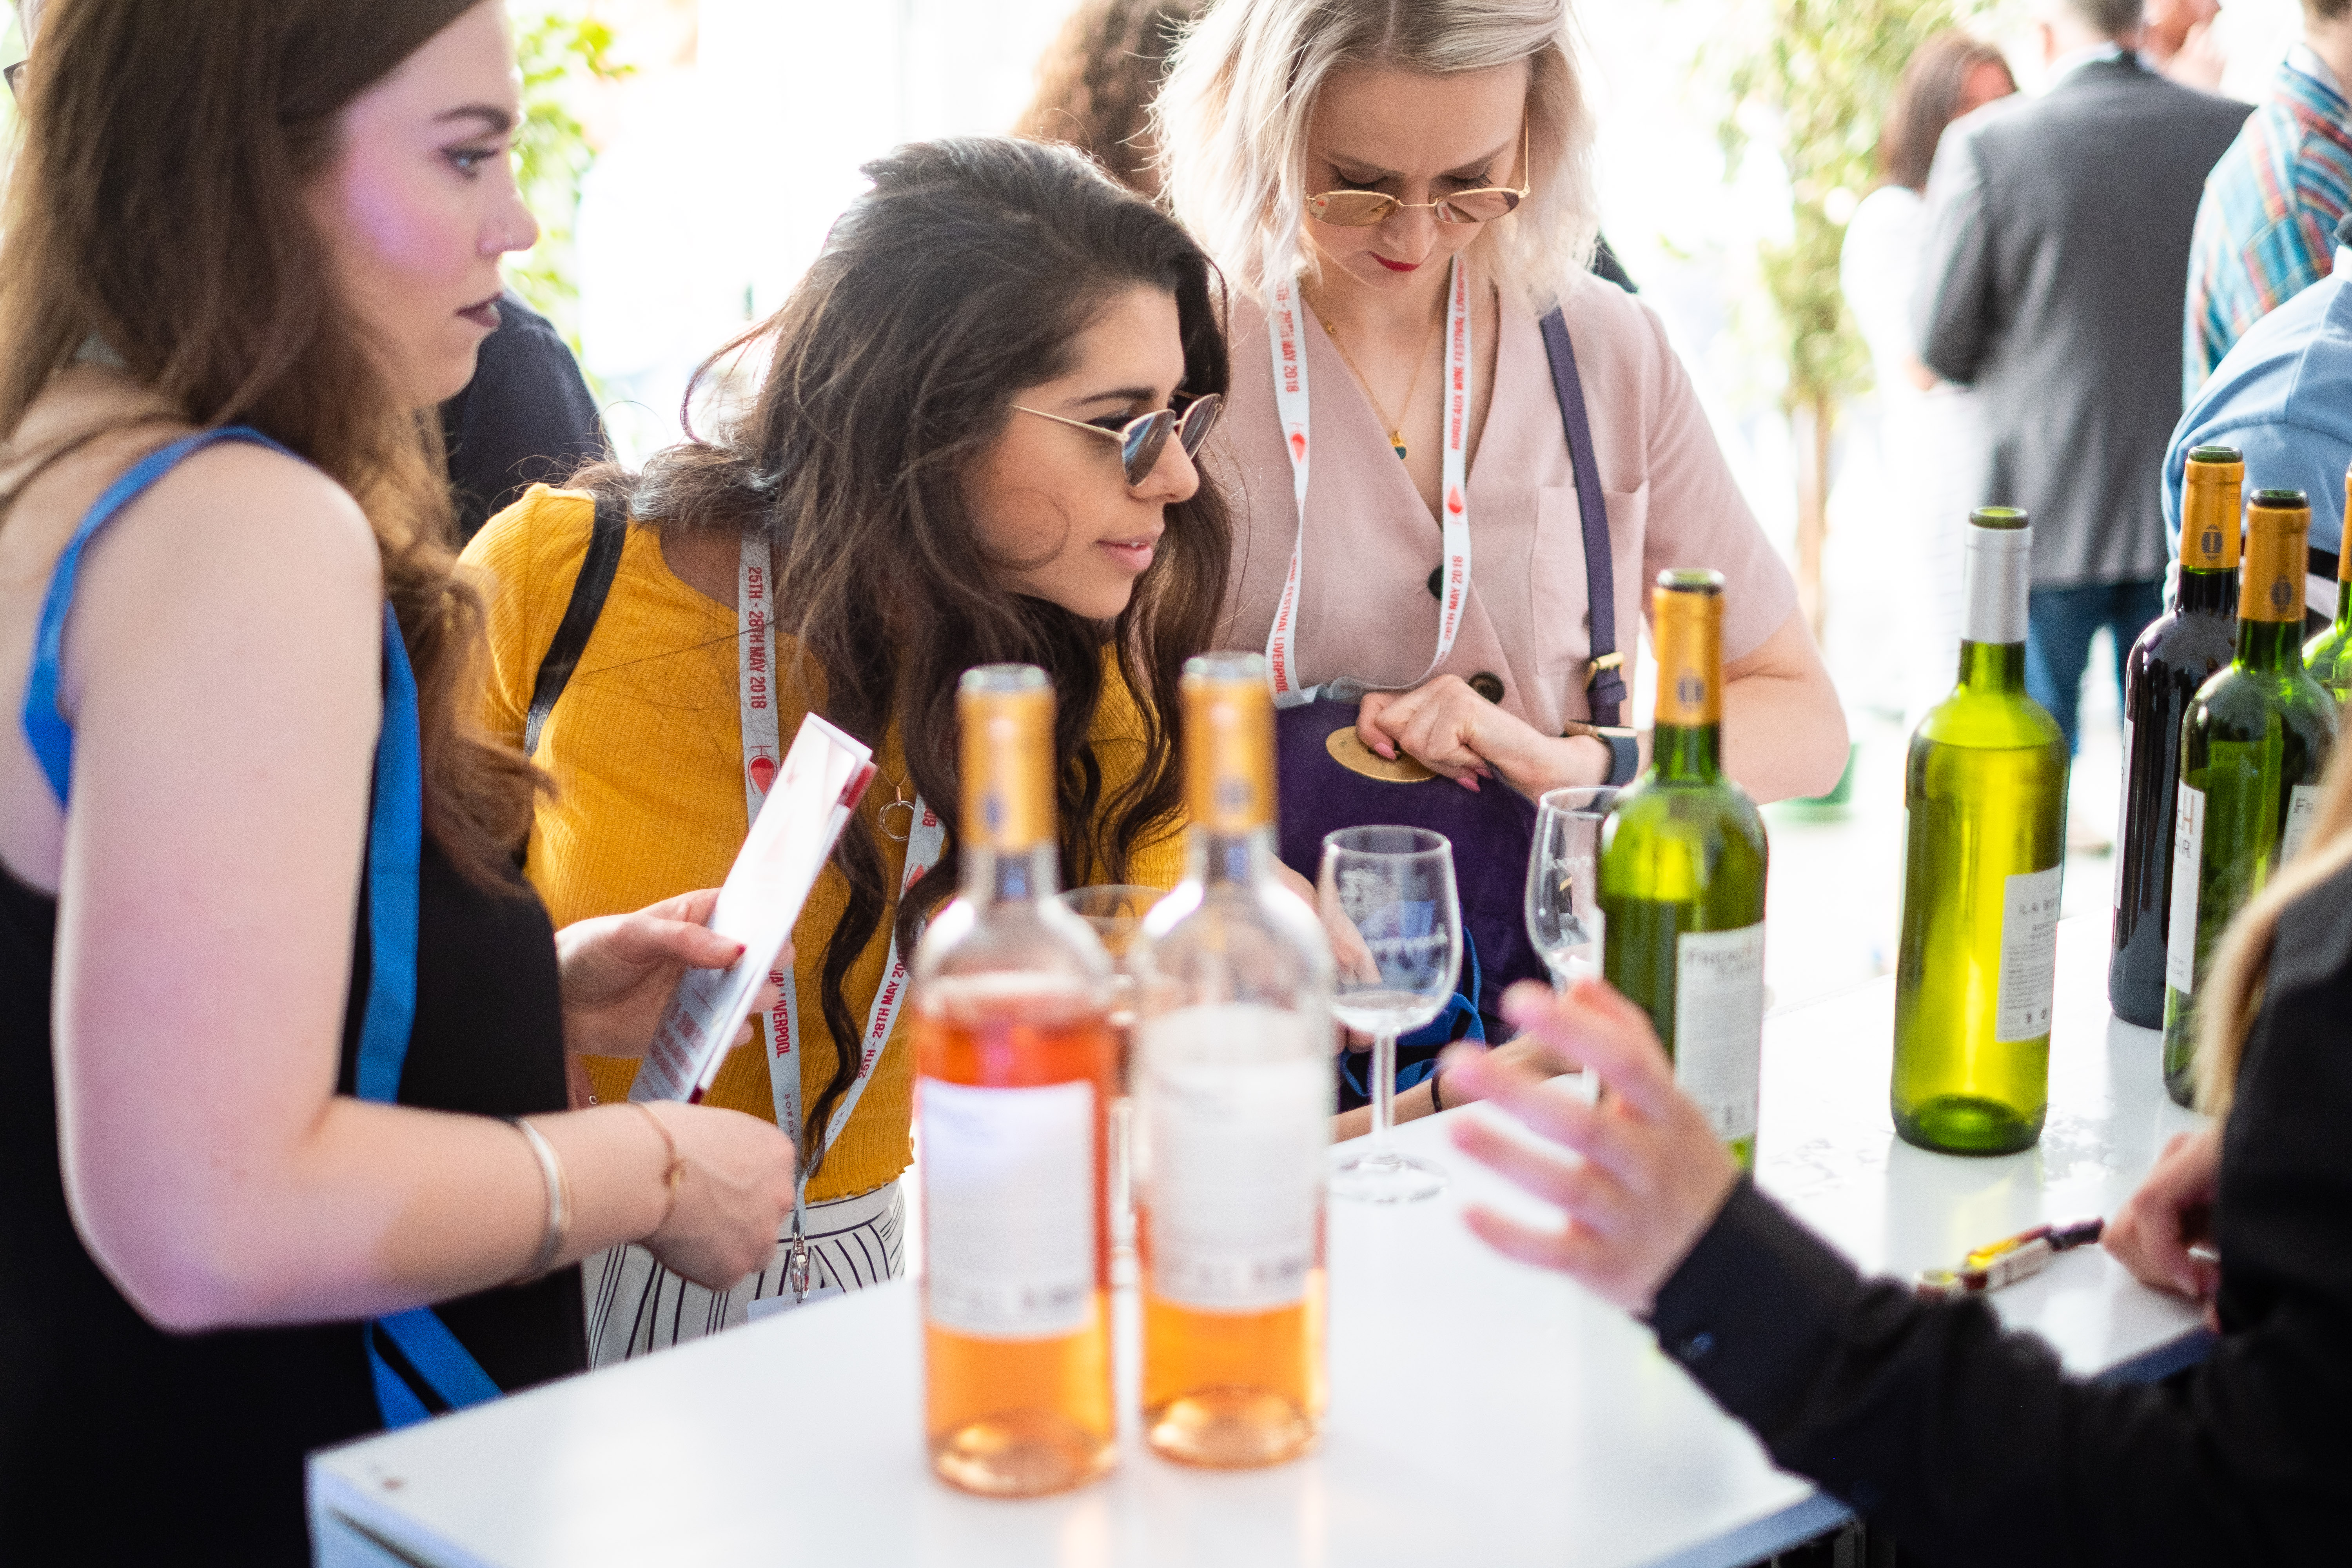 Girls looking at wine